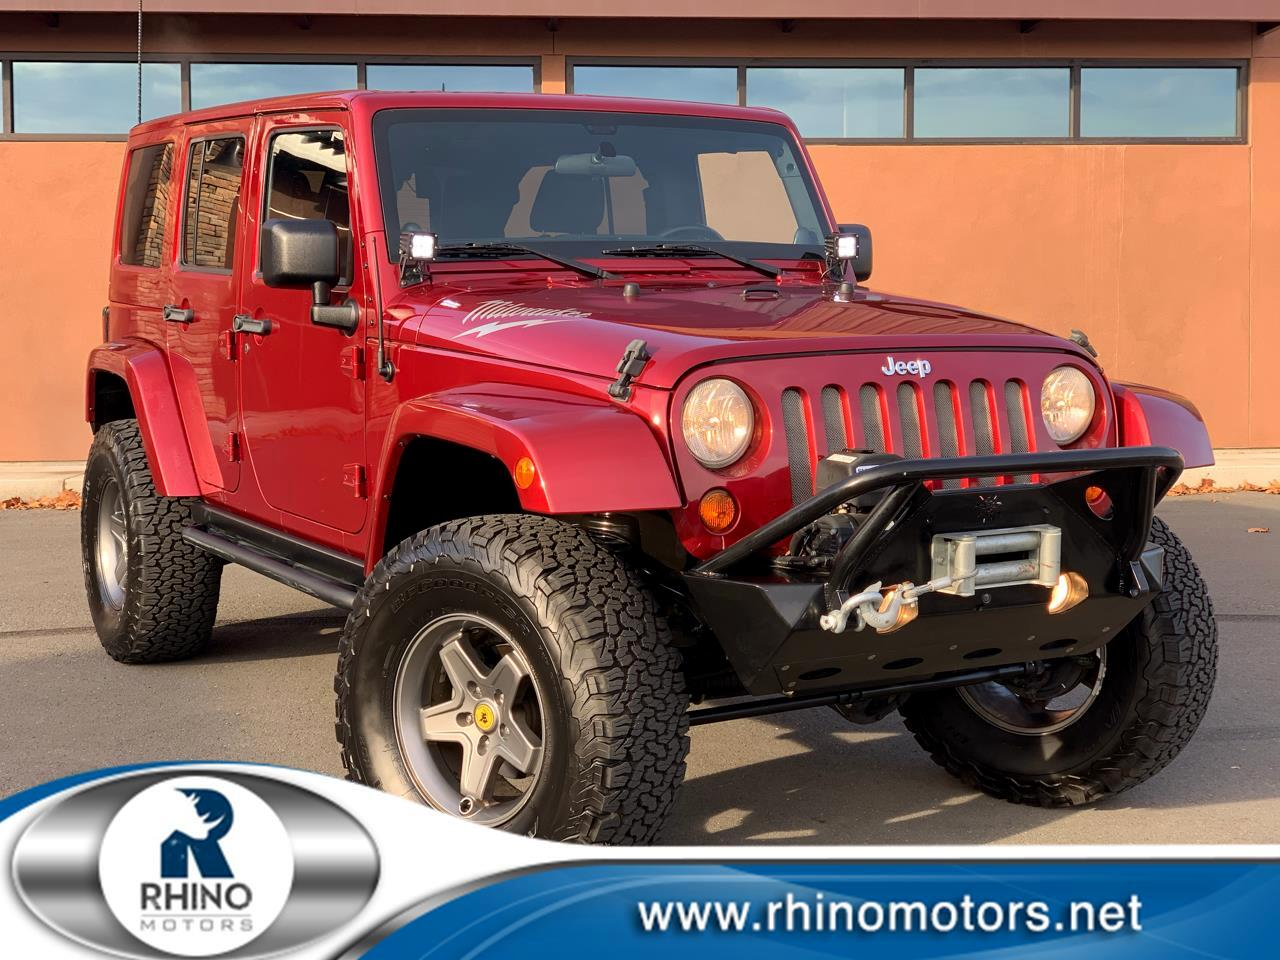 Jeep Wrangler Unlimited 4WD 4dr Rubicon 2012